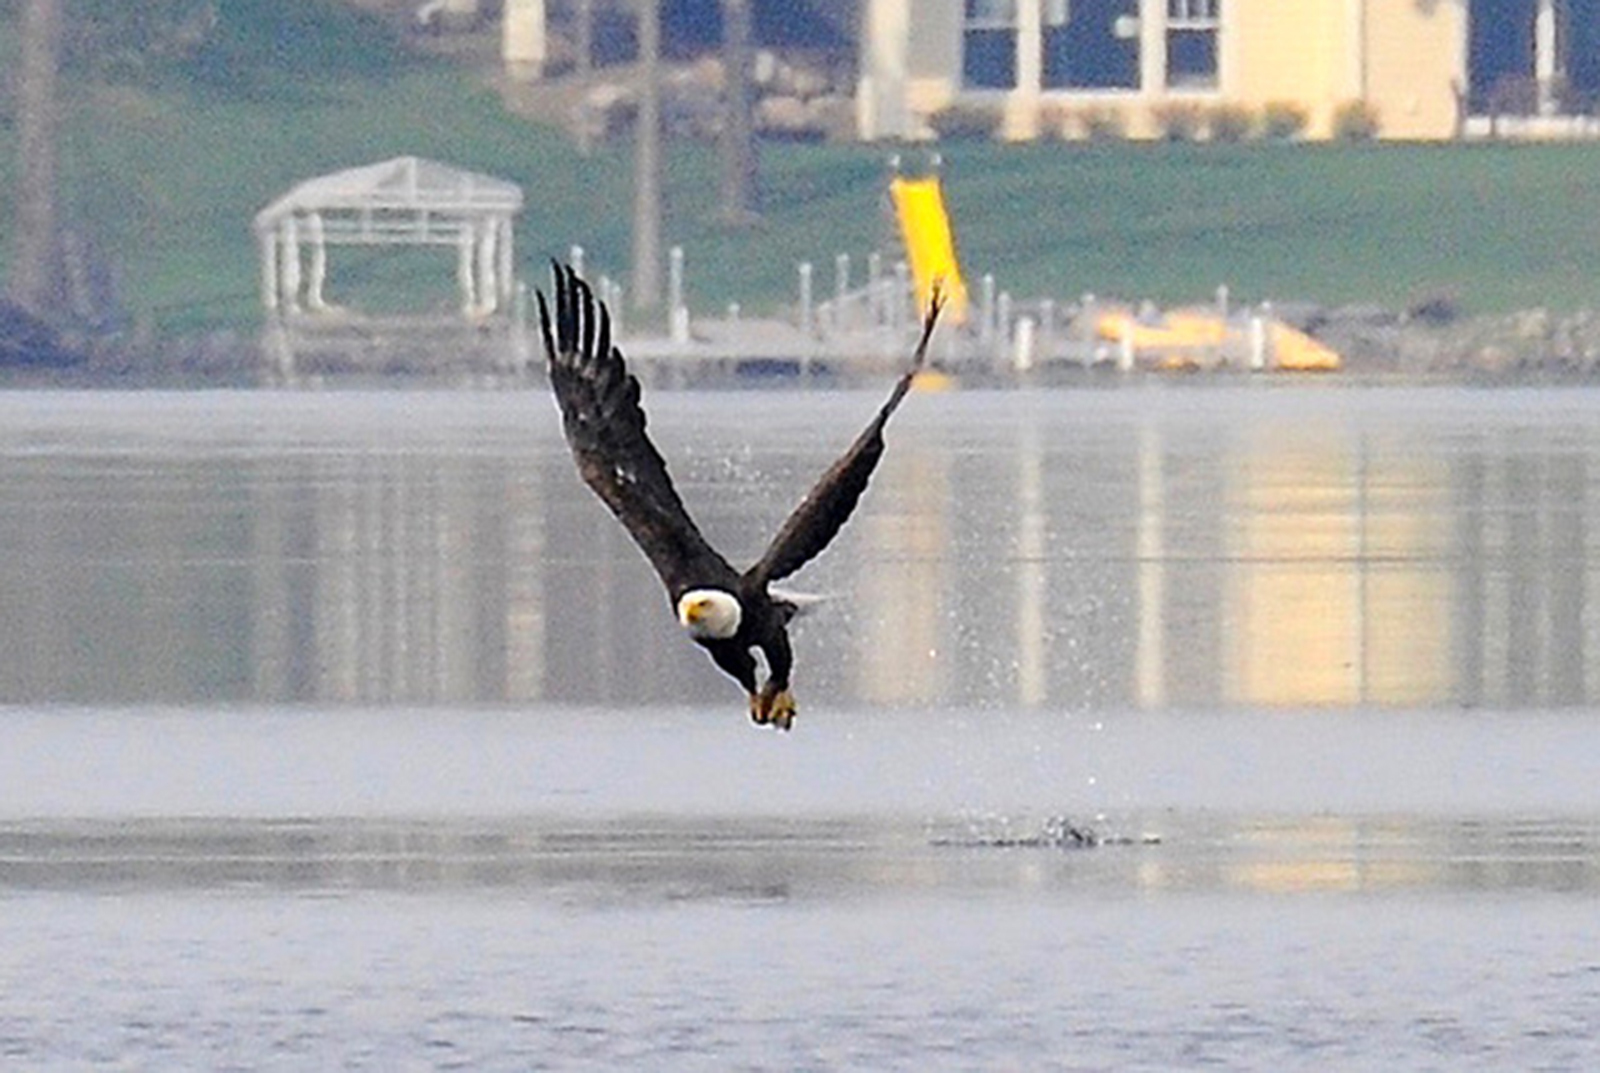 A bald eagle lifts off a lake with its prey.